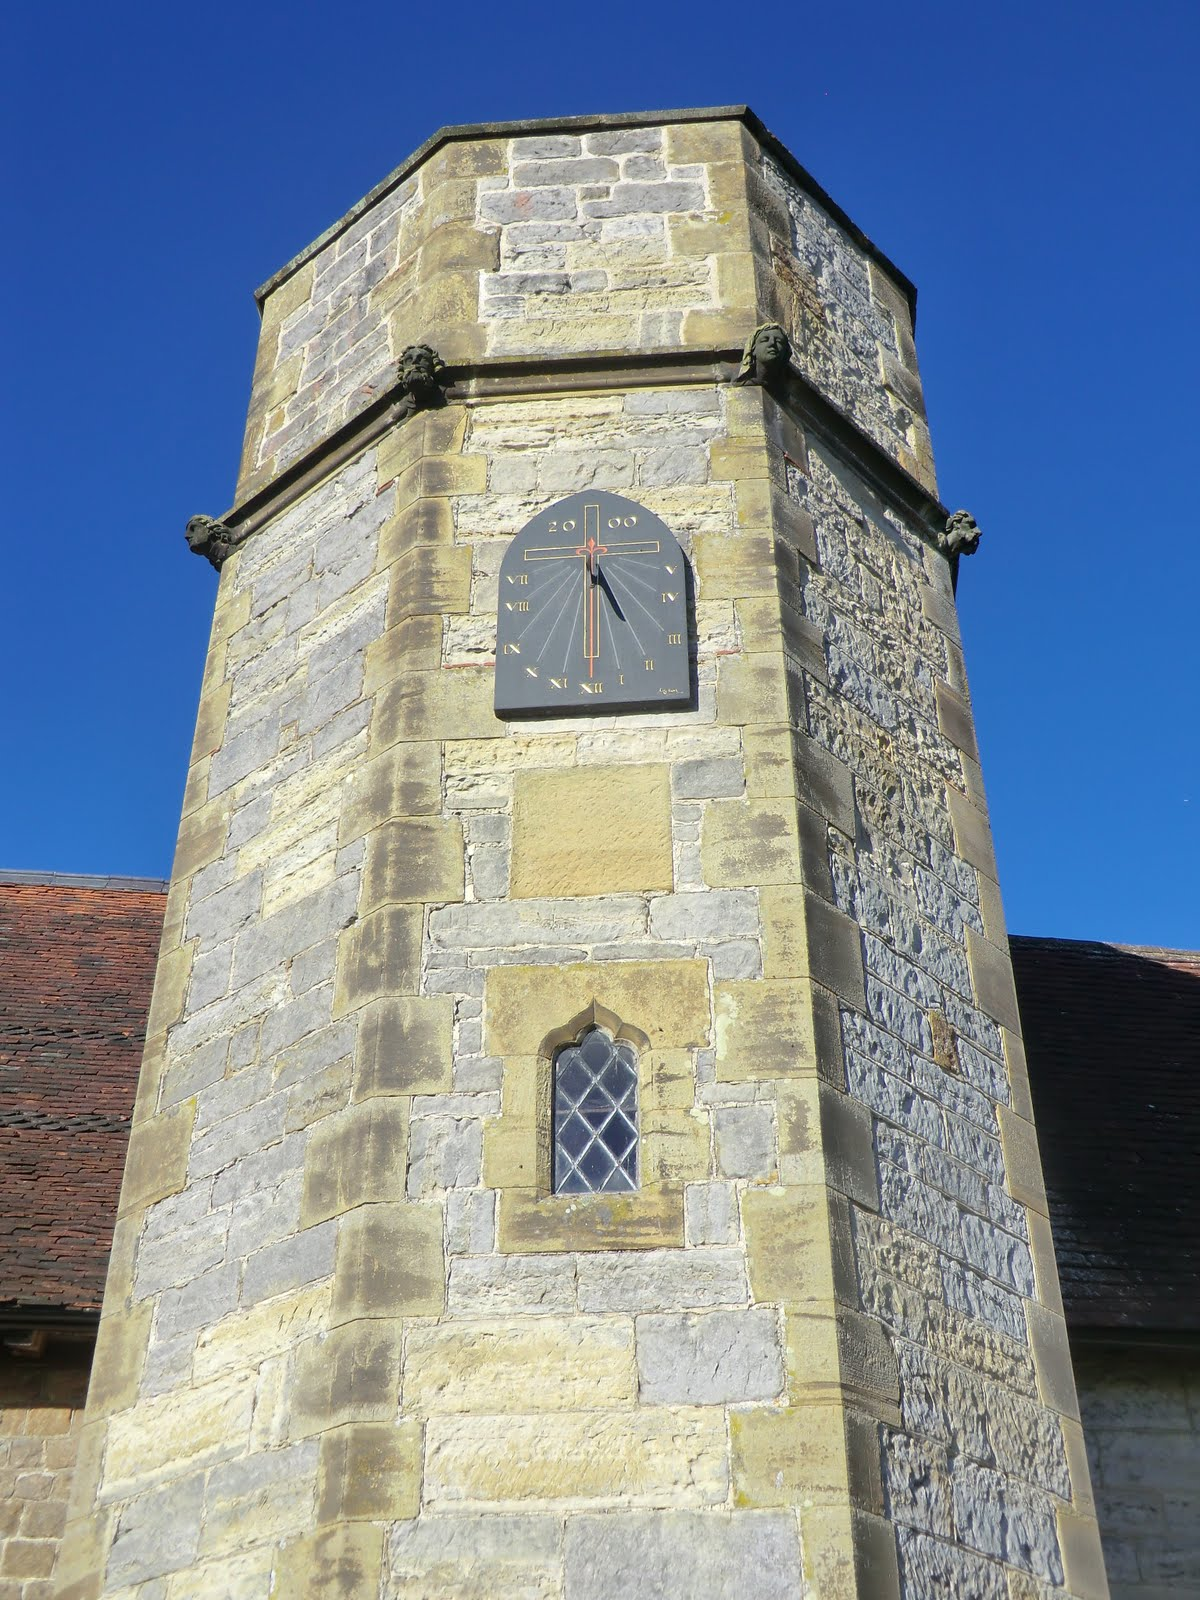 CIMG5755 Millennium sundial, St Mary's church